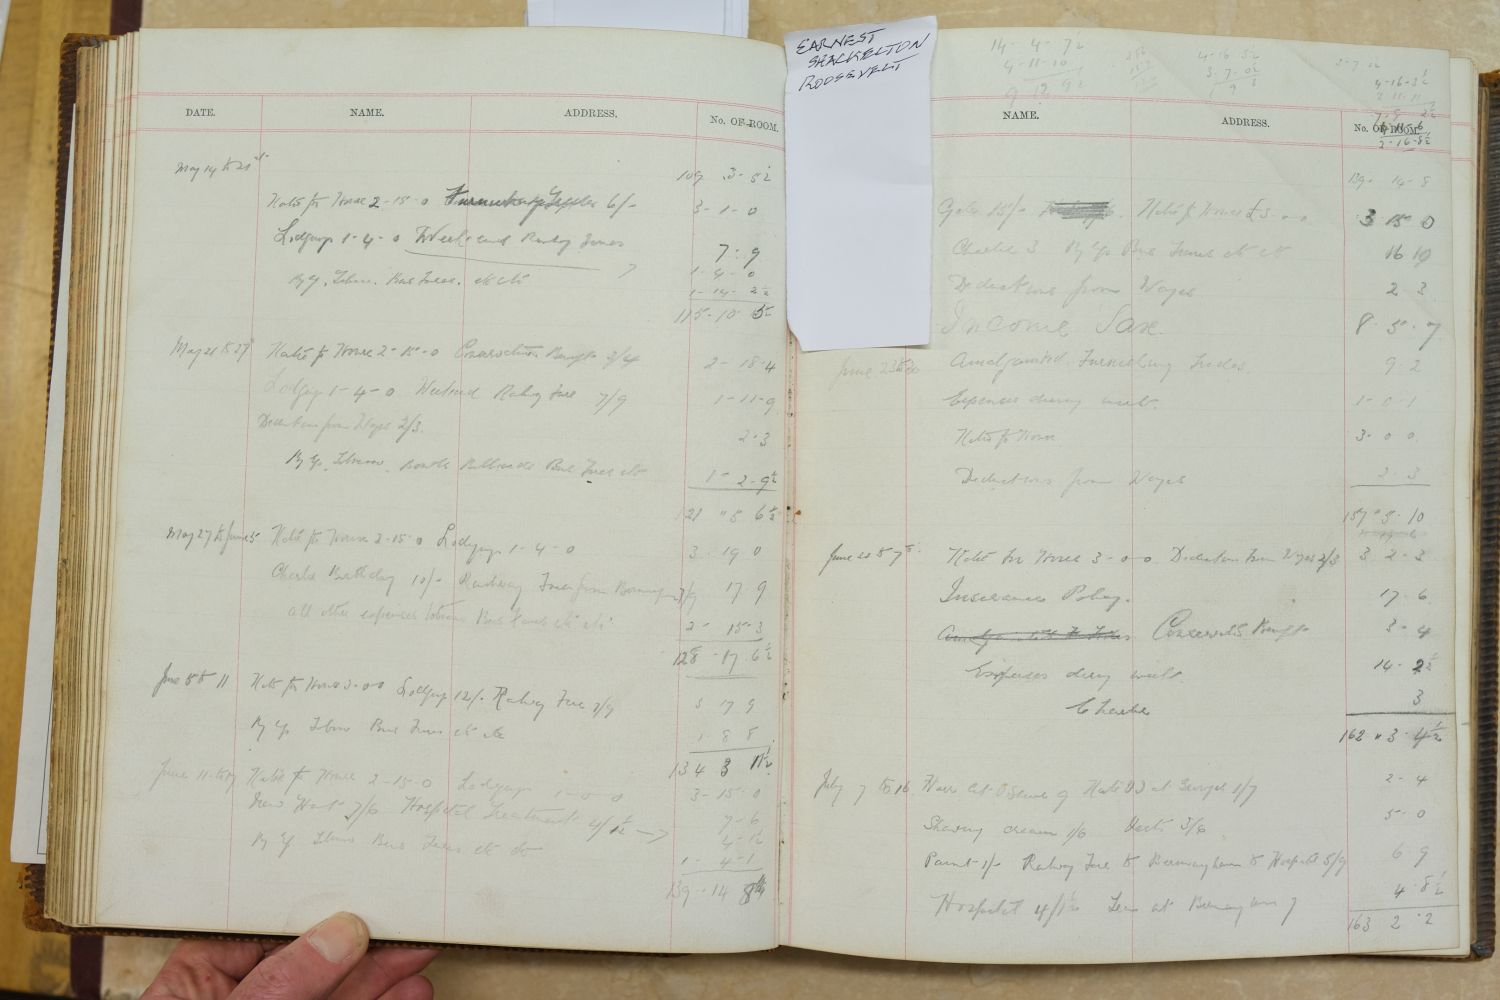 Visitors' Book. South Western Hotel, Southampton. A visitors' book, circa 1899-1912 - Image 16 of 16